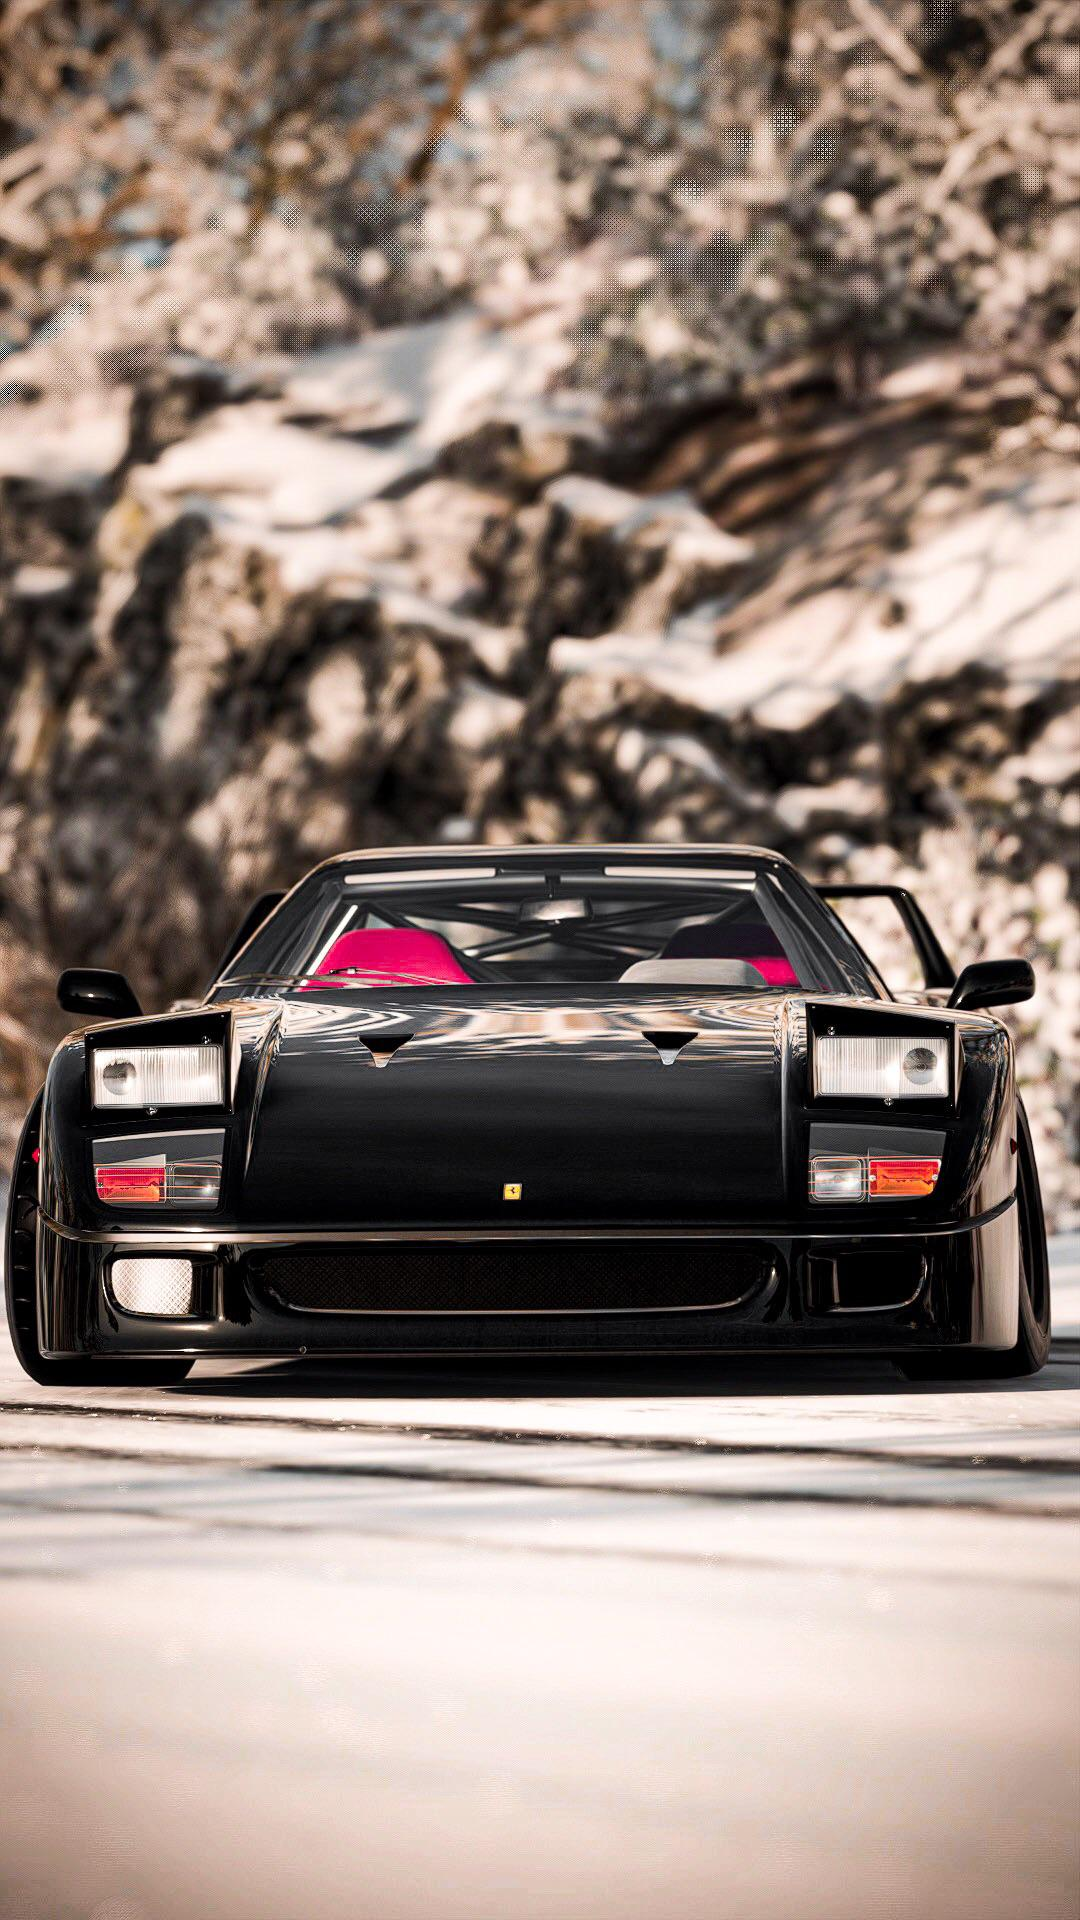 Download These Ferrari Iphone Wallpapers From Forza Now And Thank Us Later Autoevolution